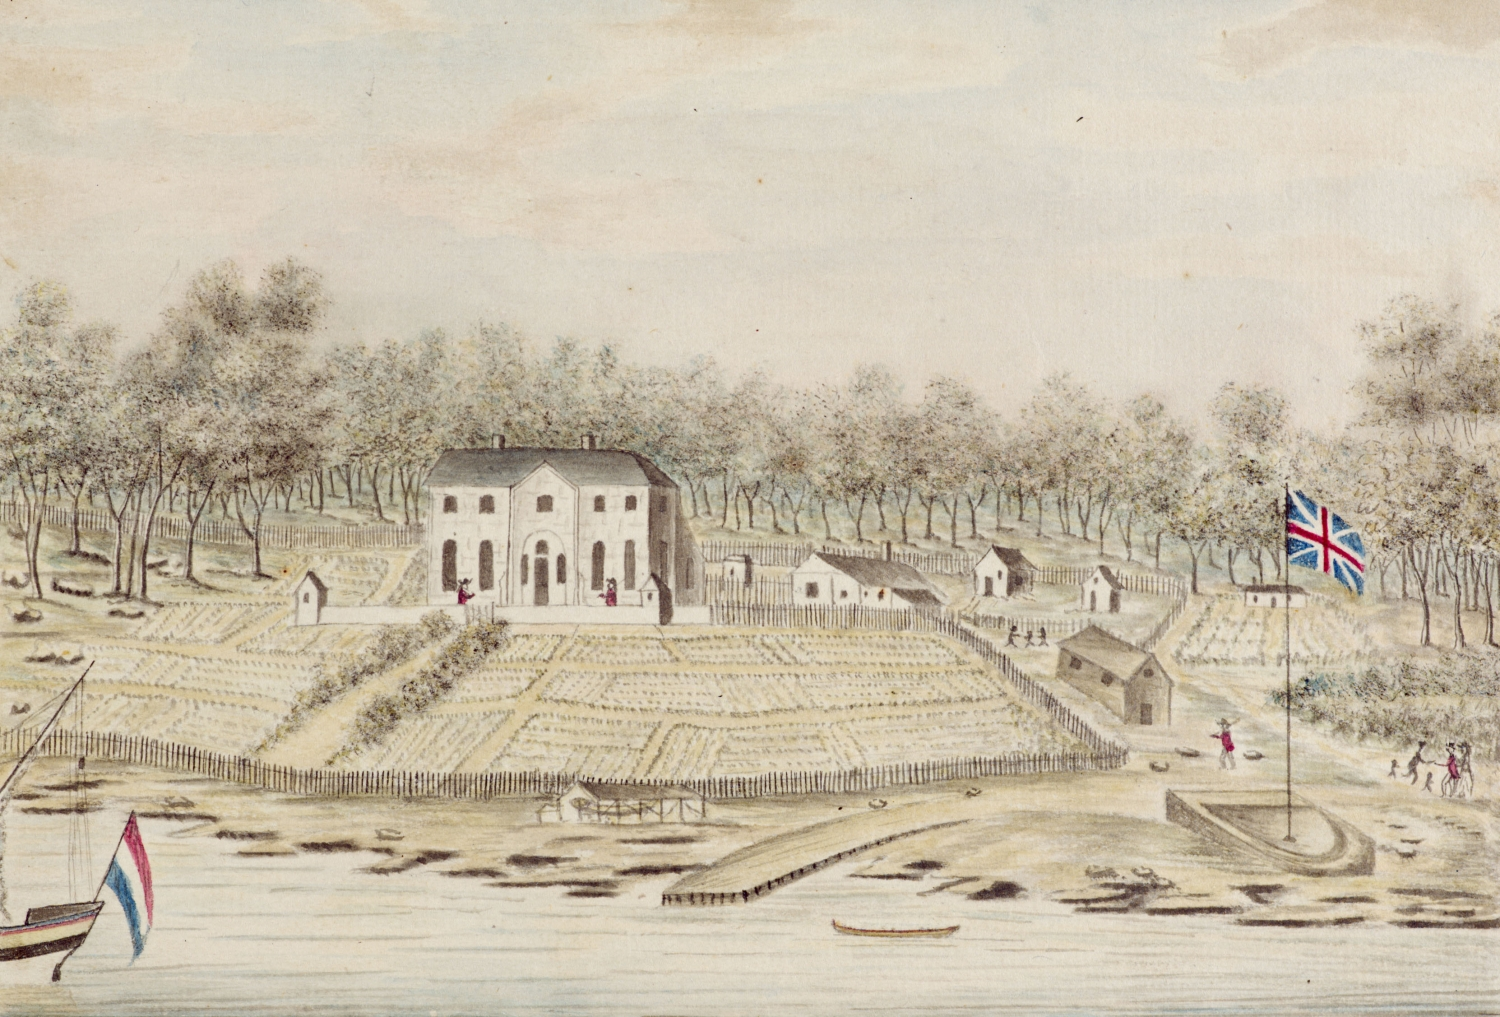 Drawing showing a 2 stroey house on a hill overlooking shoreline. There are temporary structures in the adjoining garden like tent and shack.